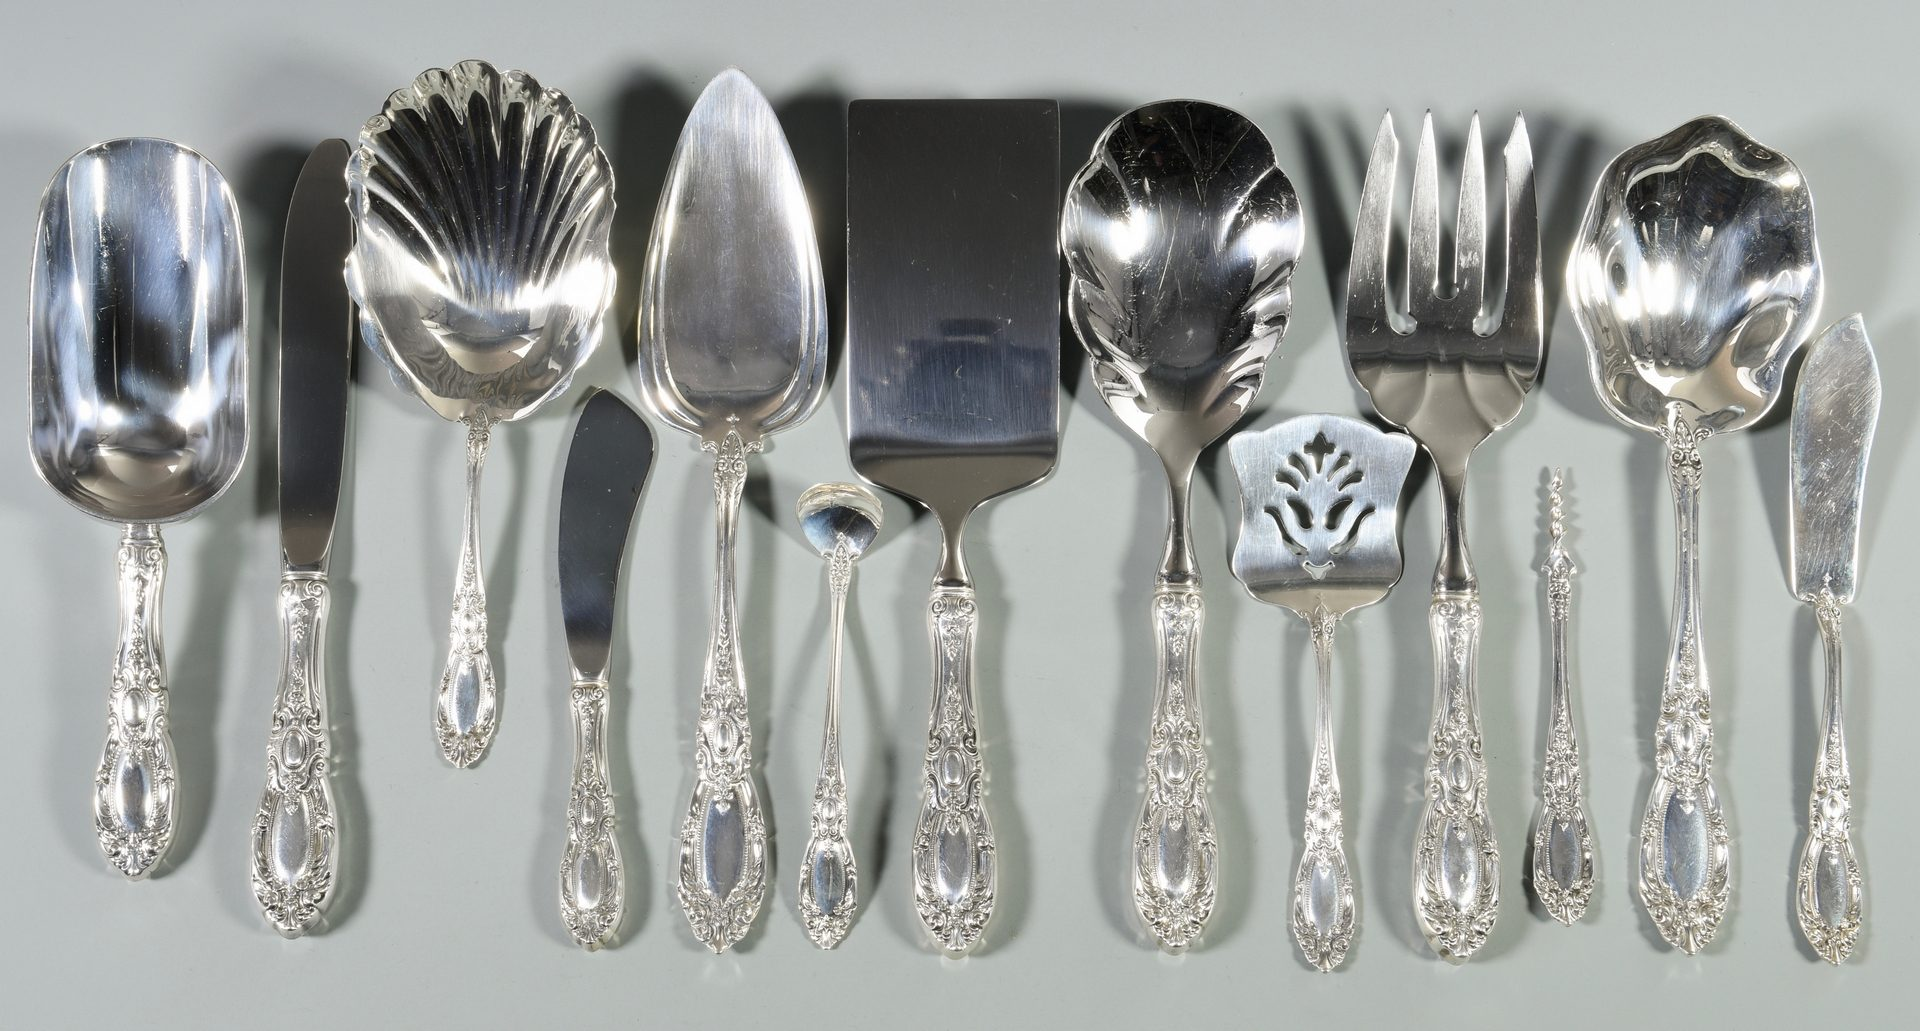 Lot 55: Towle King Richard Sterling Flatware, 95 pcs.